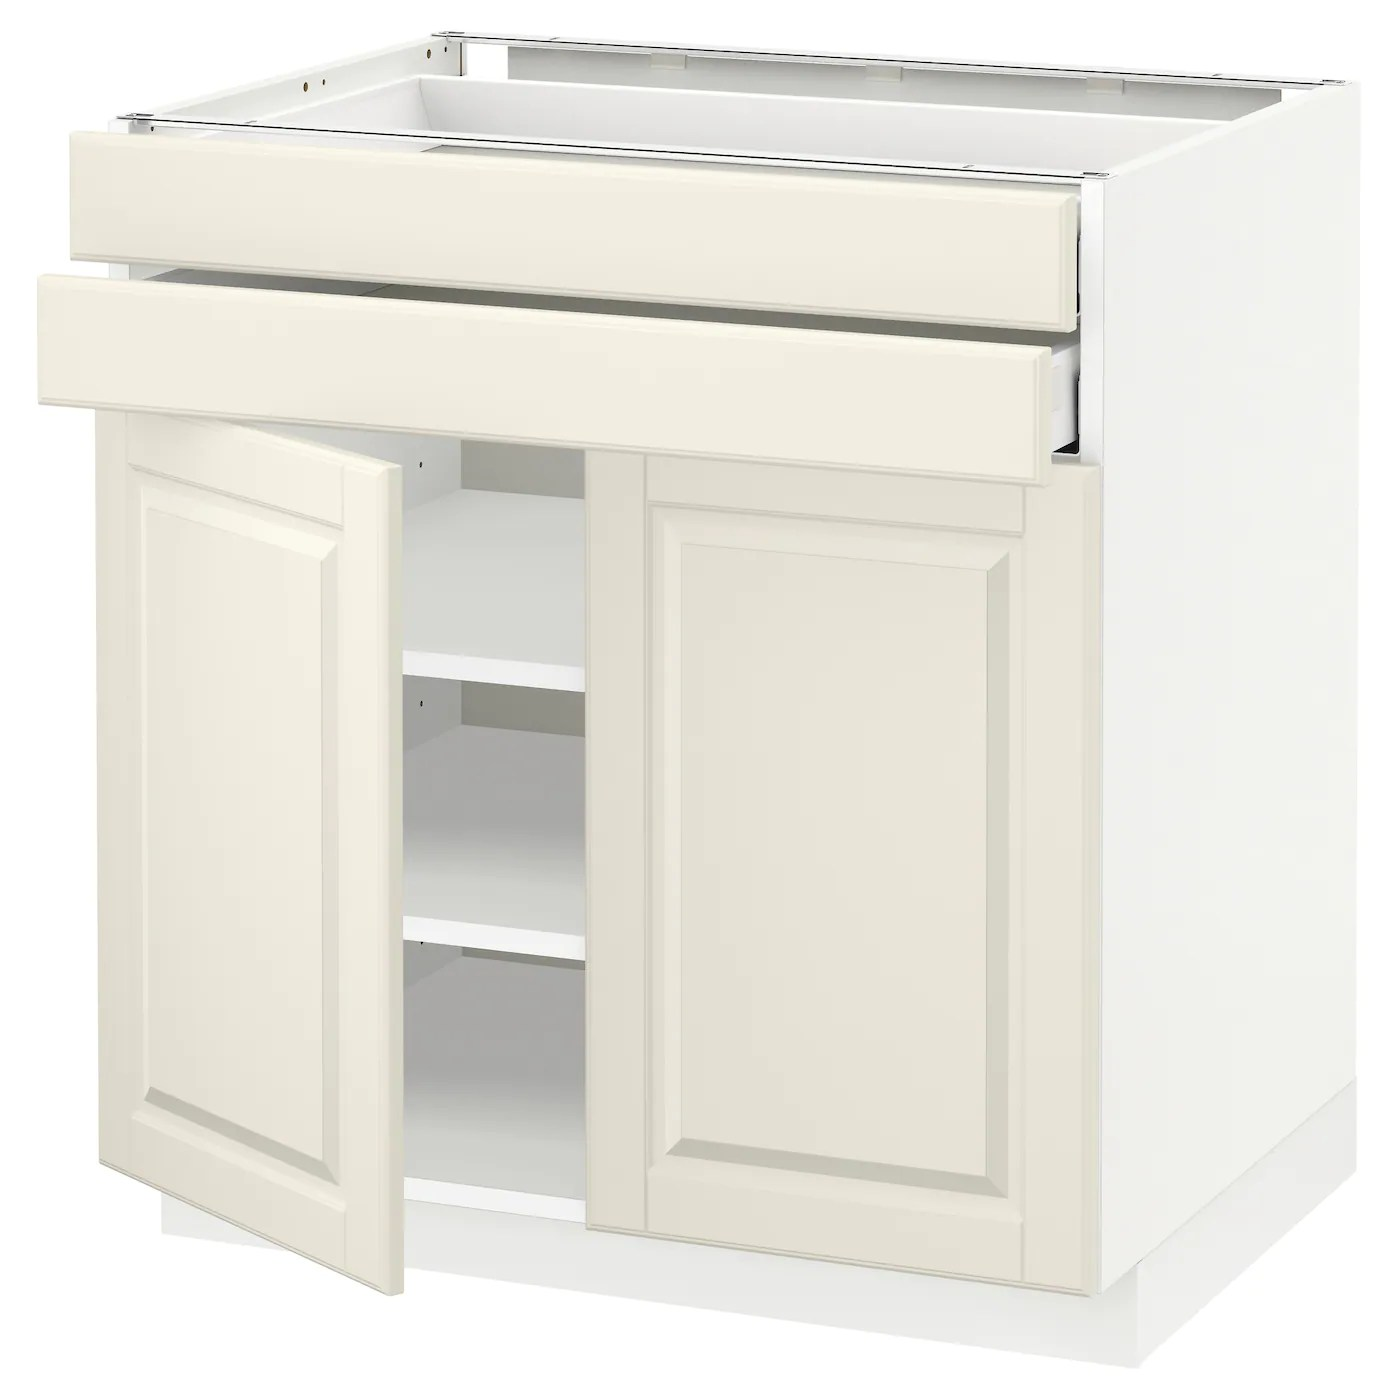 Ikea Sävedal Metod Maximera Base Cabinet W 2 Doors 2 Drawers White